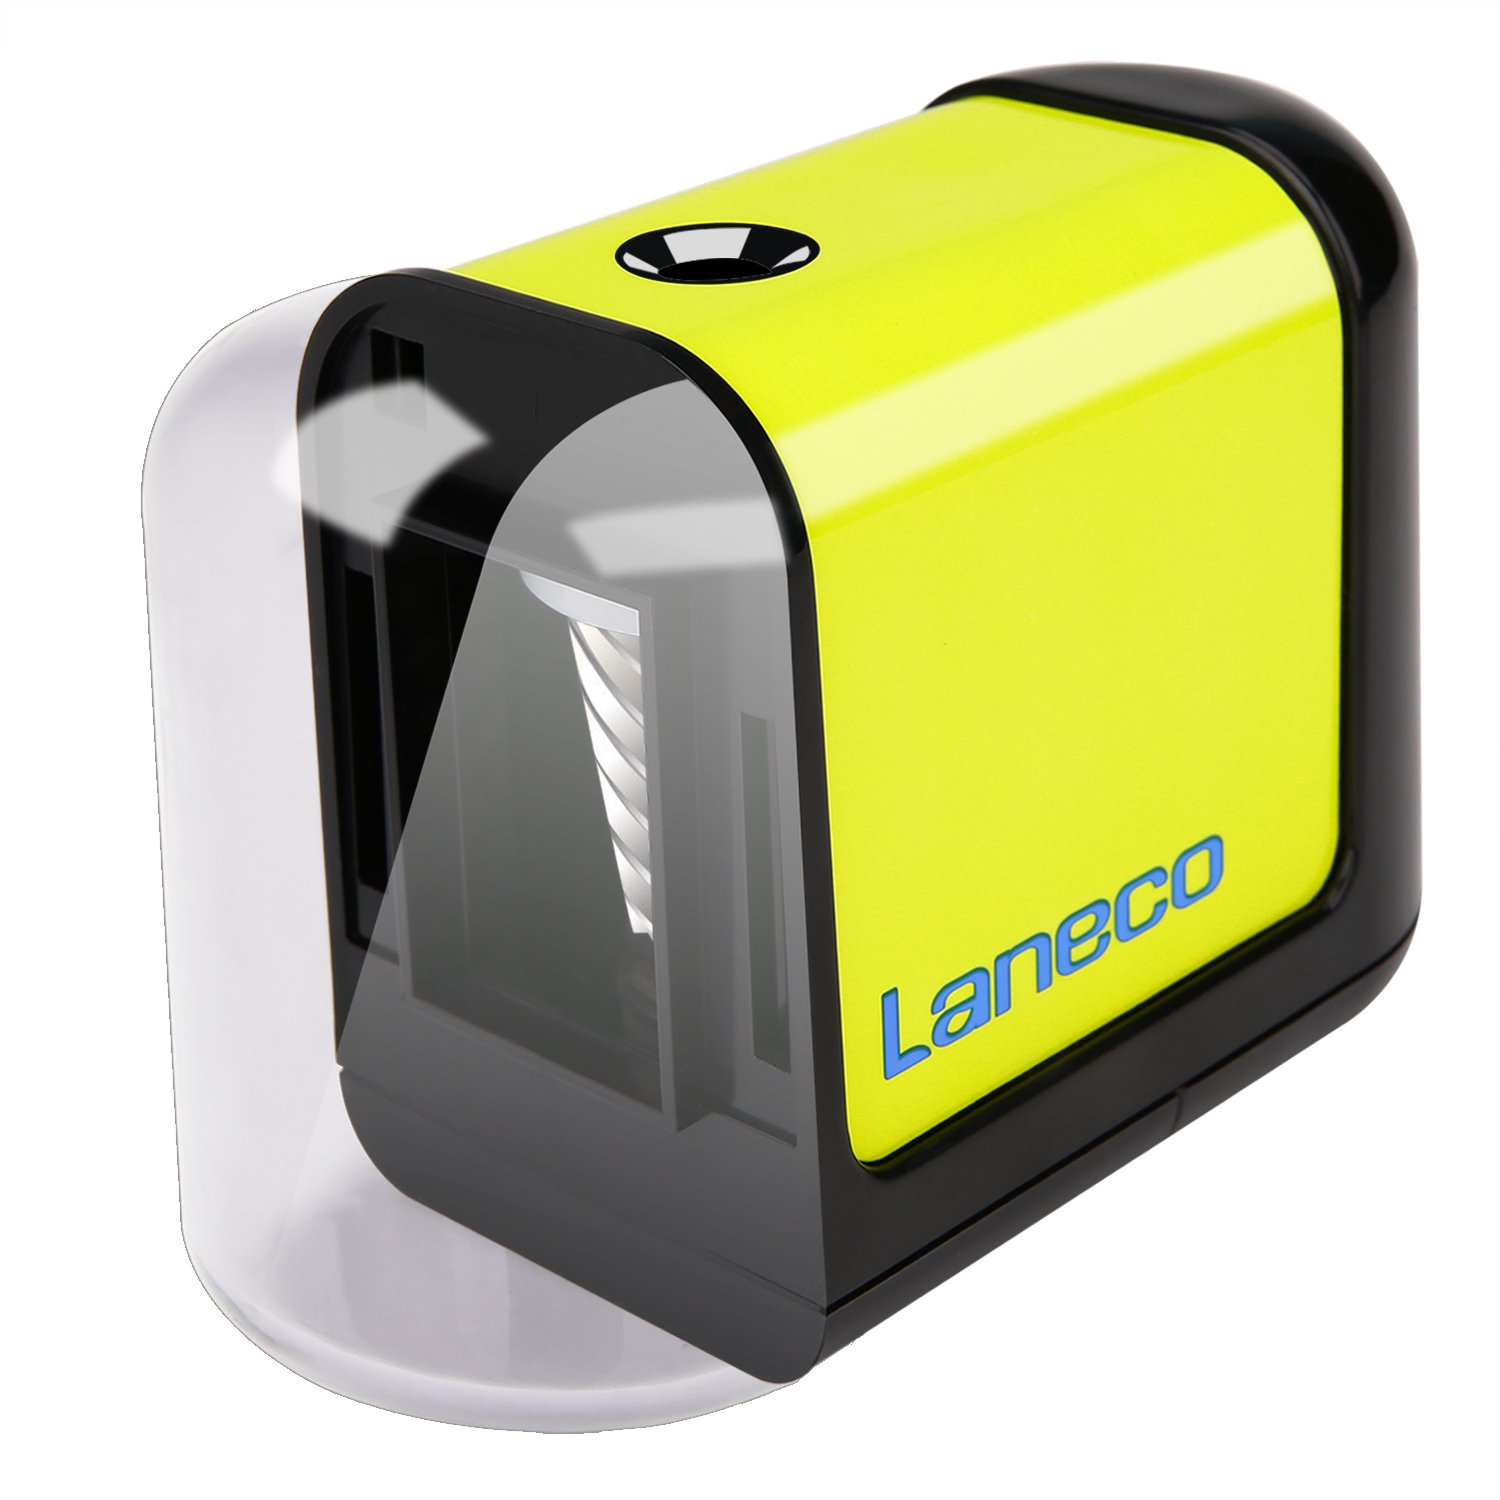 Battery Operated Electric pencil sharpener, Laneco Heavy Duty Helical Blade Pencil Sharpener for Classroom, Office, School, Kids, Teachers, Artists and Adults by Laneco (Image #1)